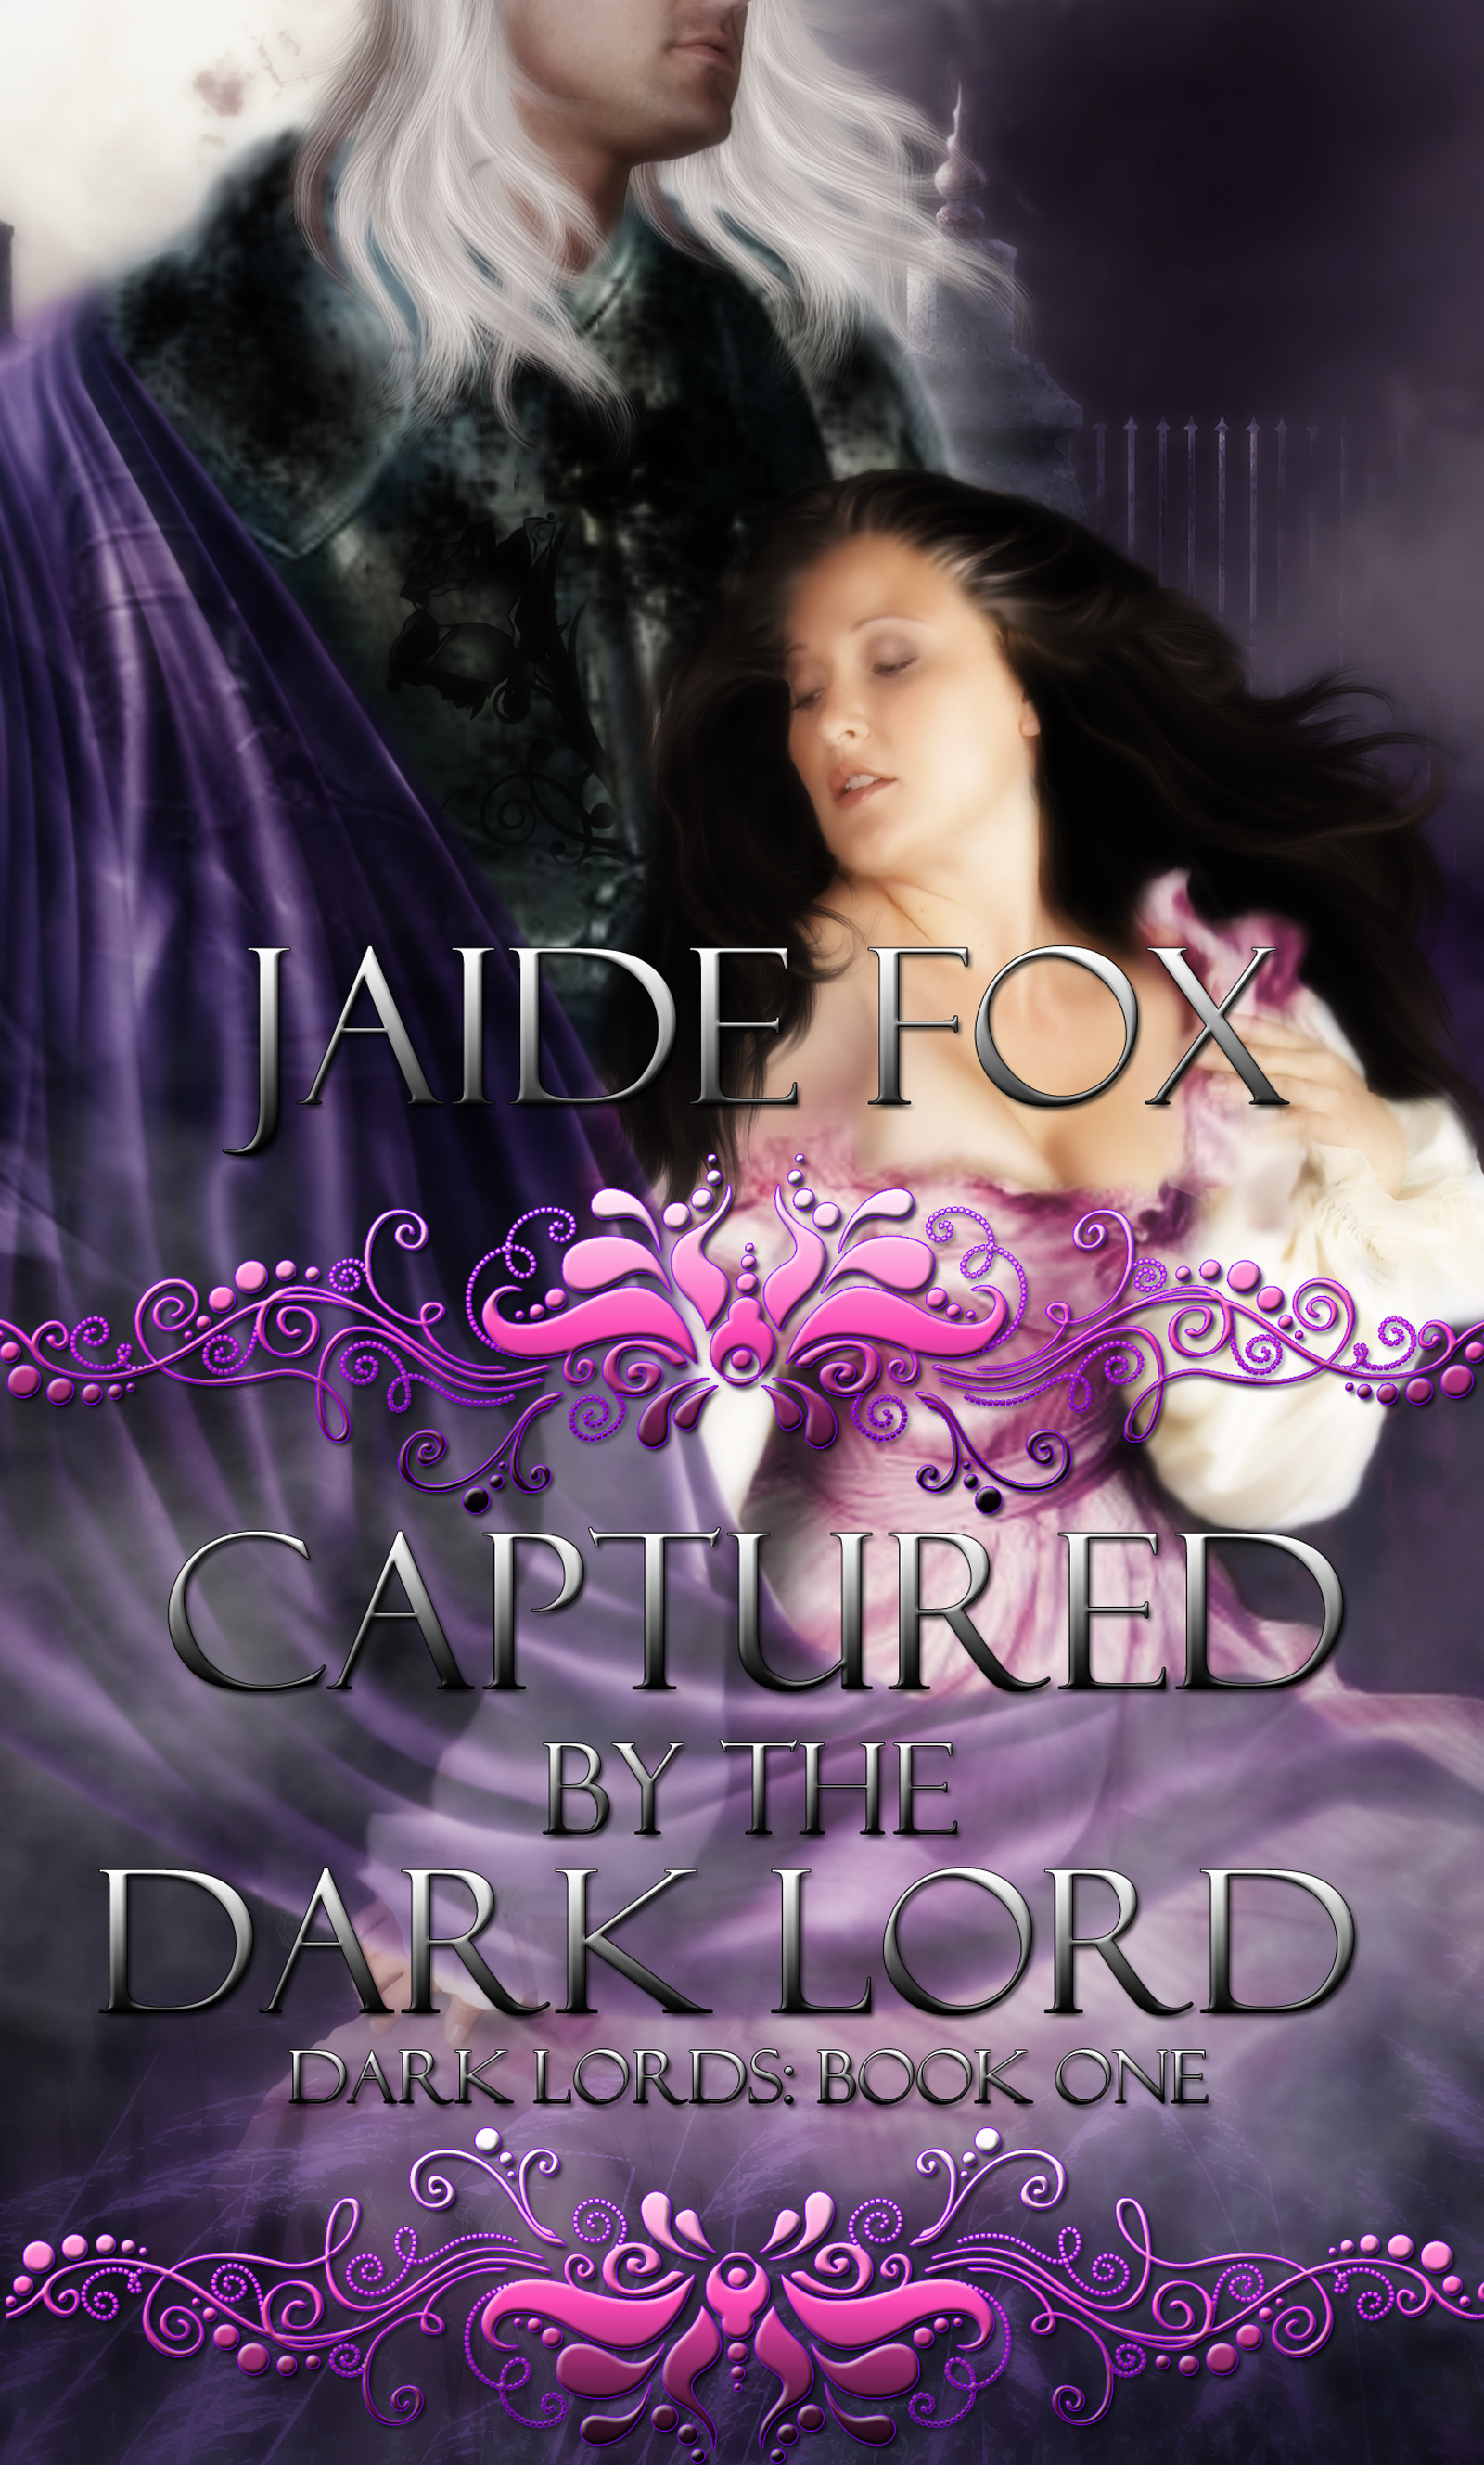 Jaide Fox - Dark Lords 1: Captured by the Dark Lord